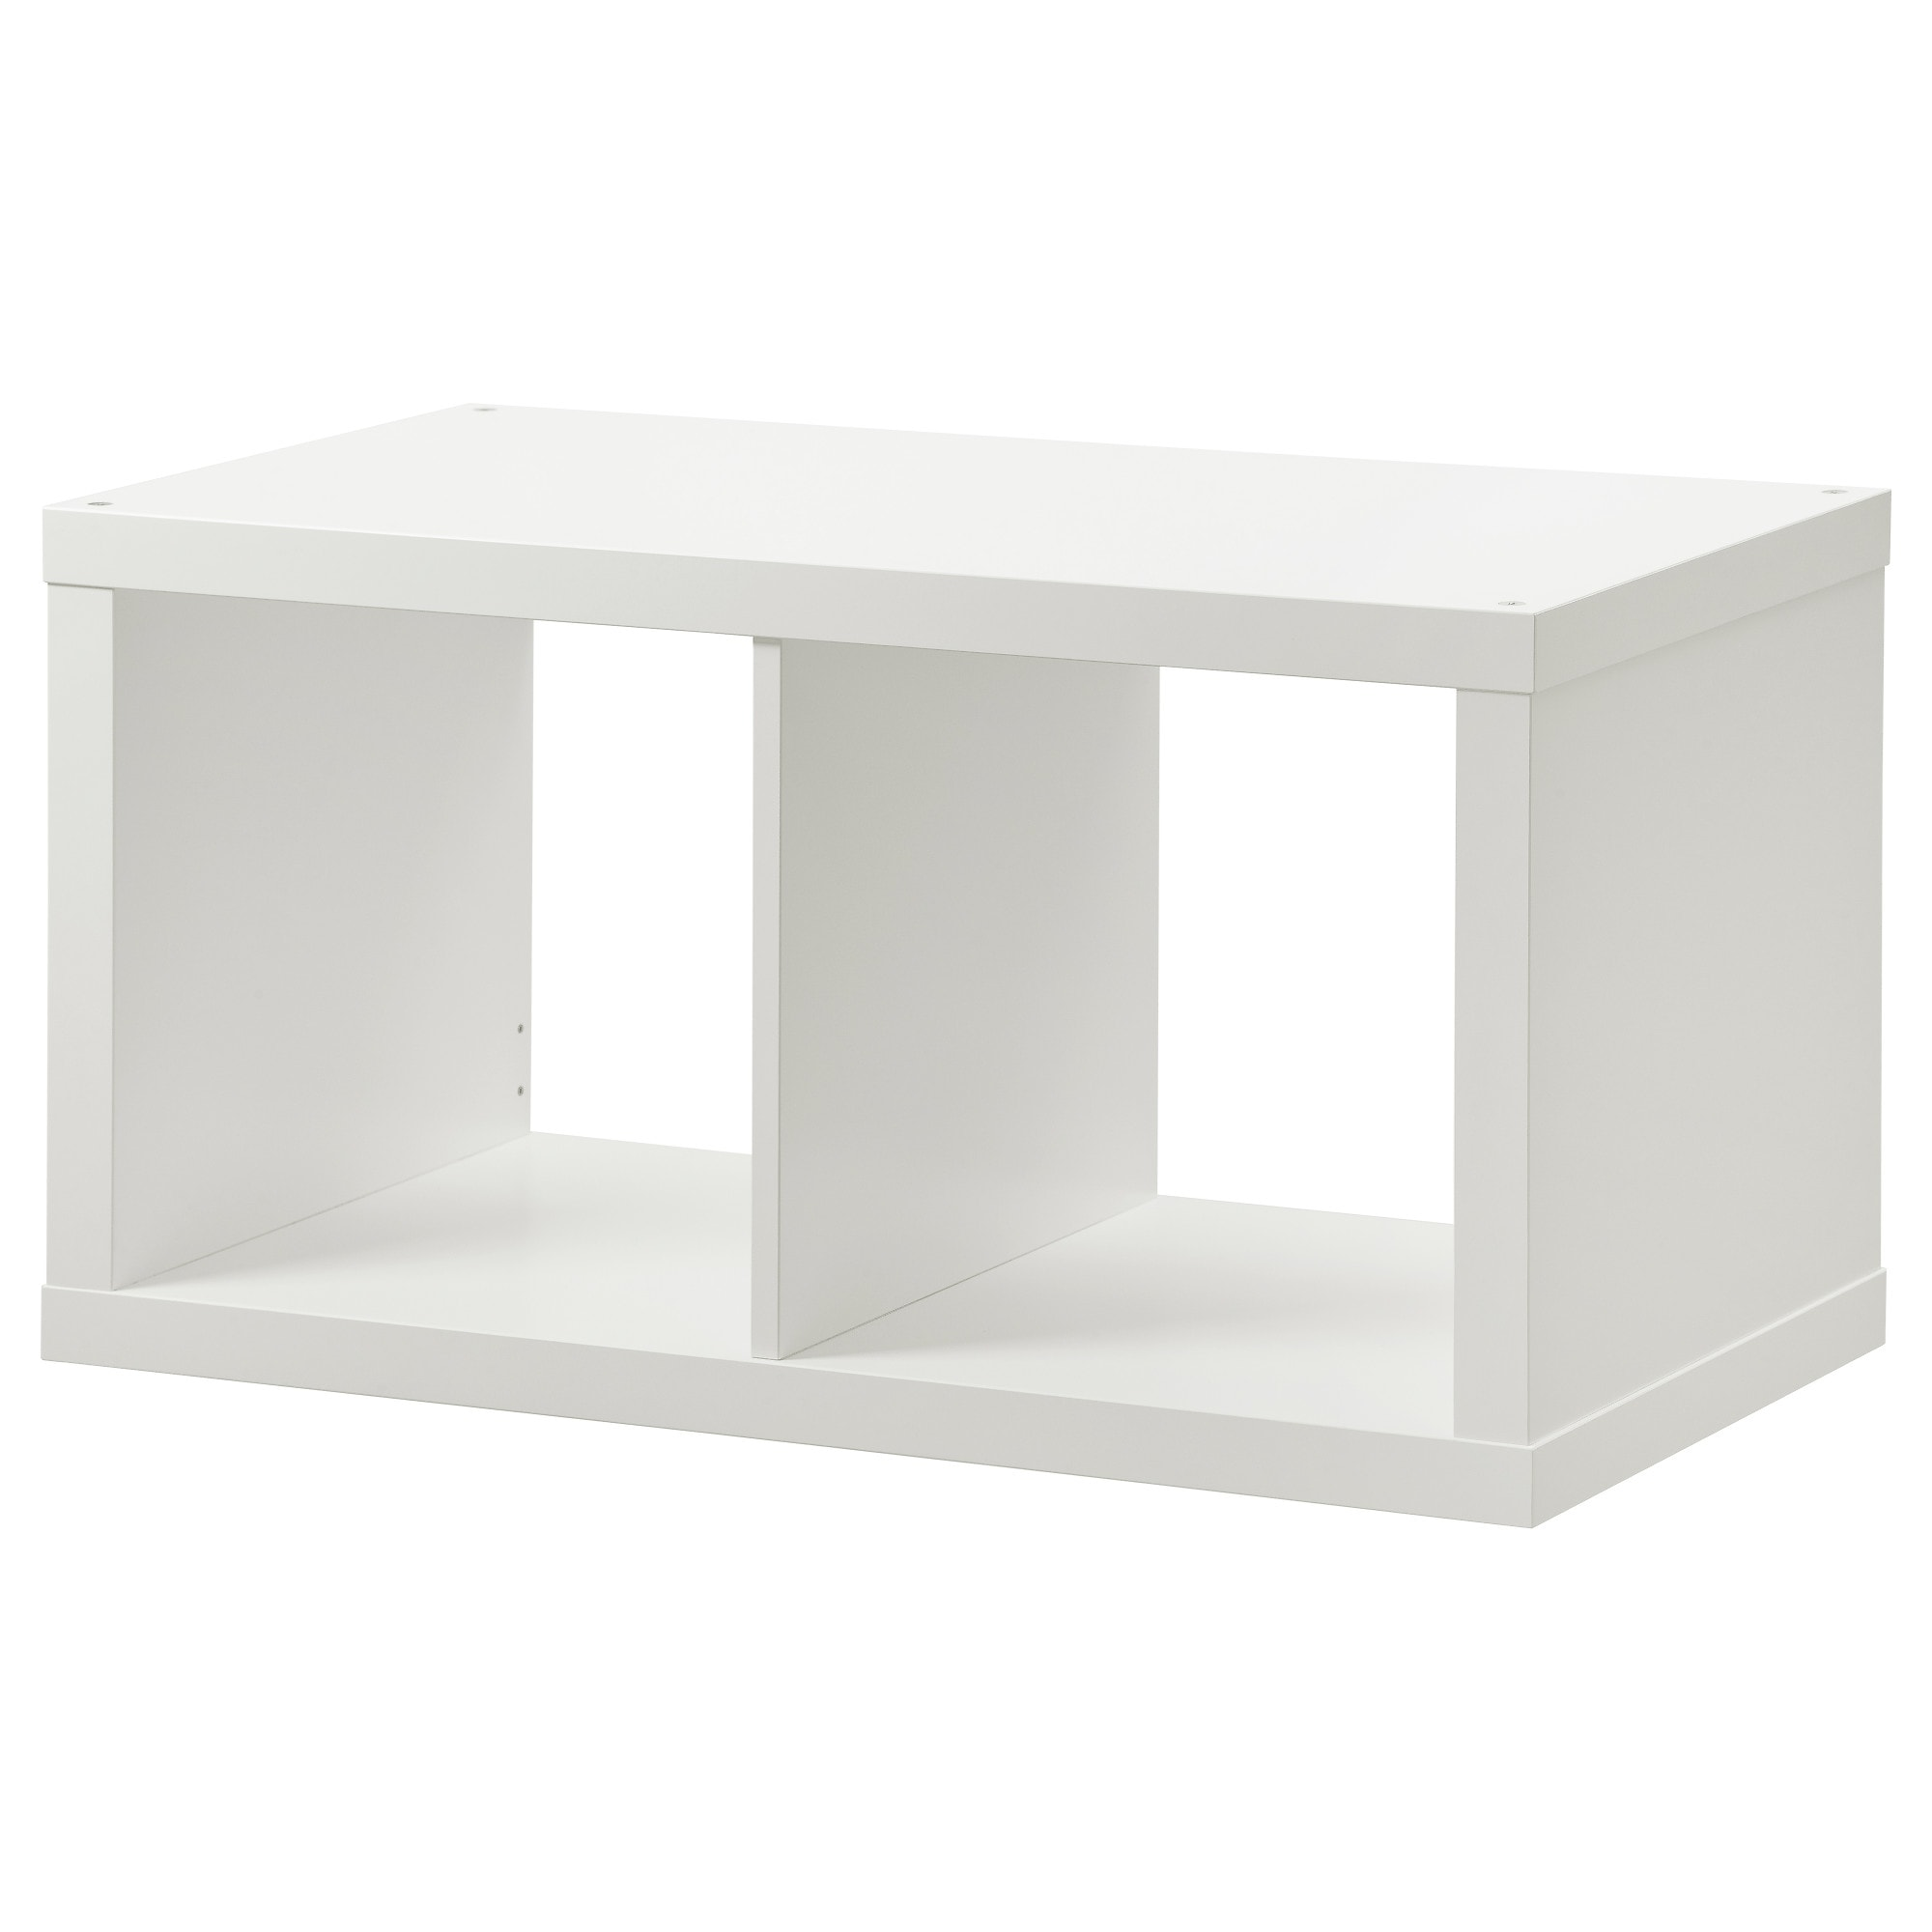 Ikea regal kallax 1x4  KALLAX Regal - Birkenachbildung - IKEA